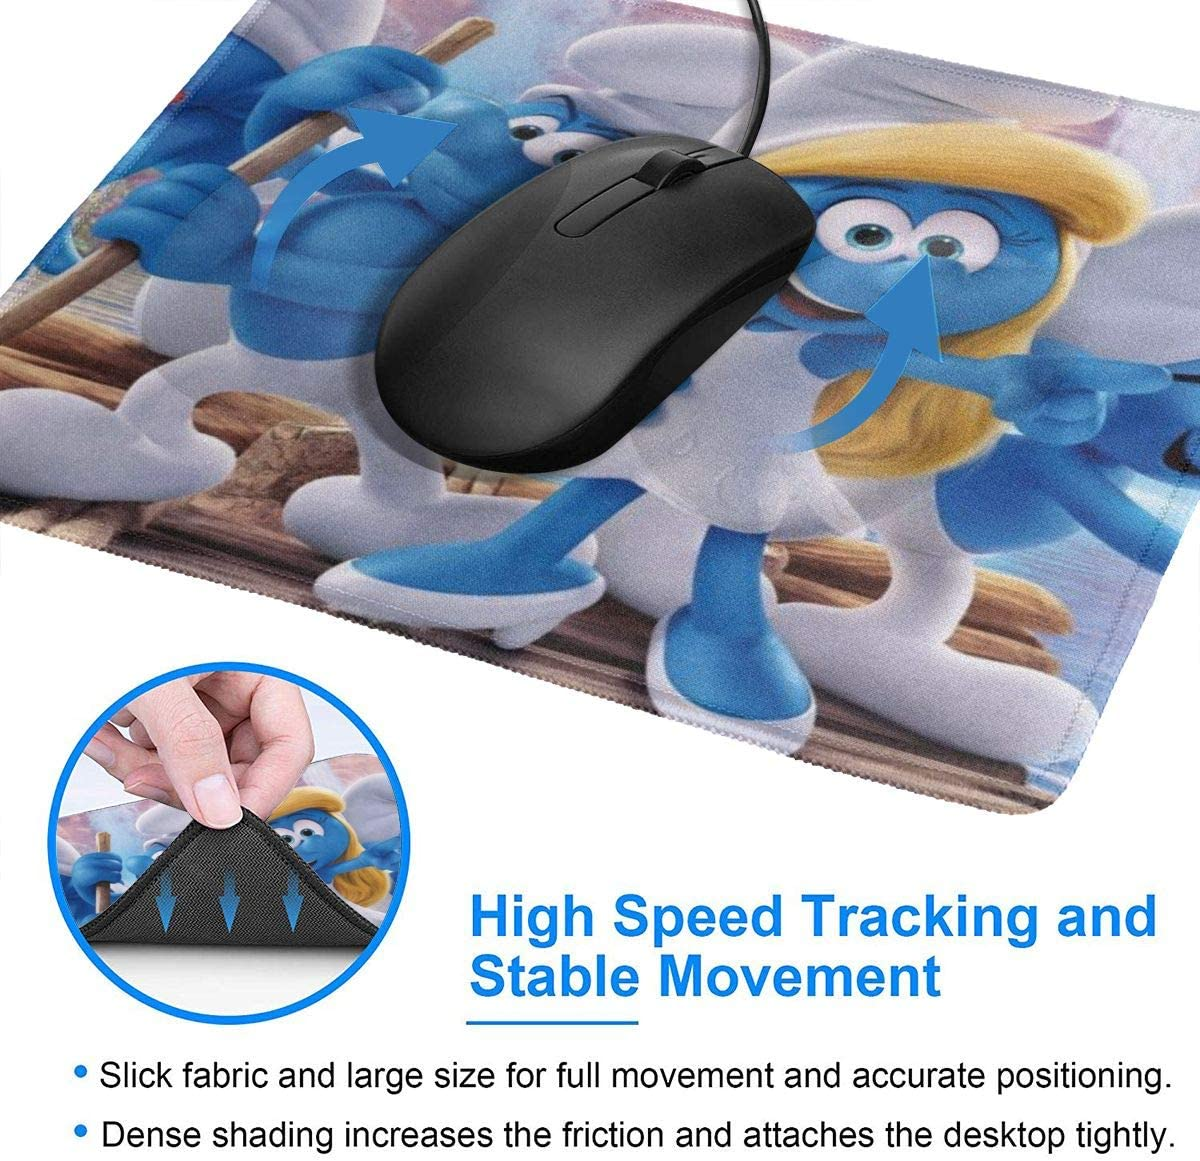 The Smurfs Gaming Mouse Pad with Stitched Edges Computer Mouse Mat Non-Slip Rubber Base for Laptop PC 12 X 10 X 0.12 Inches